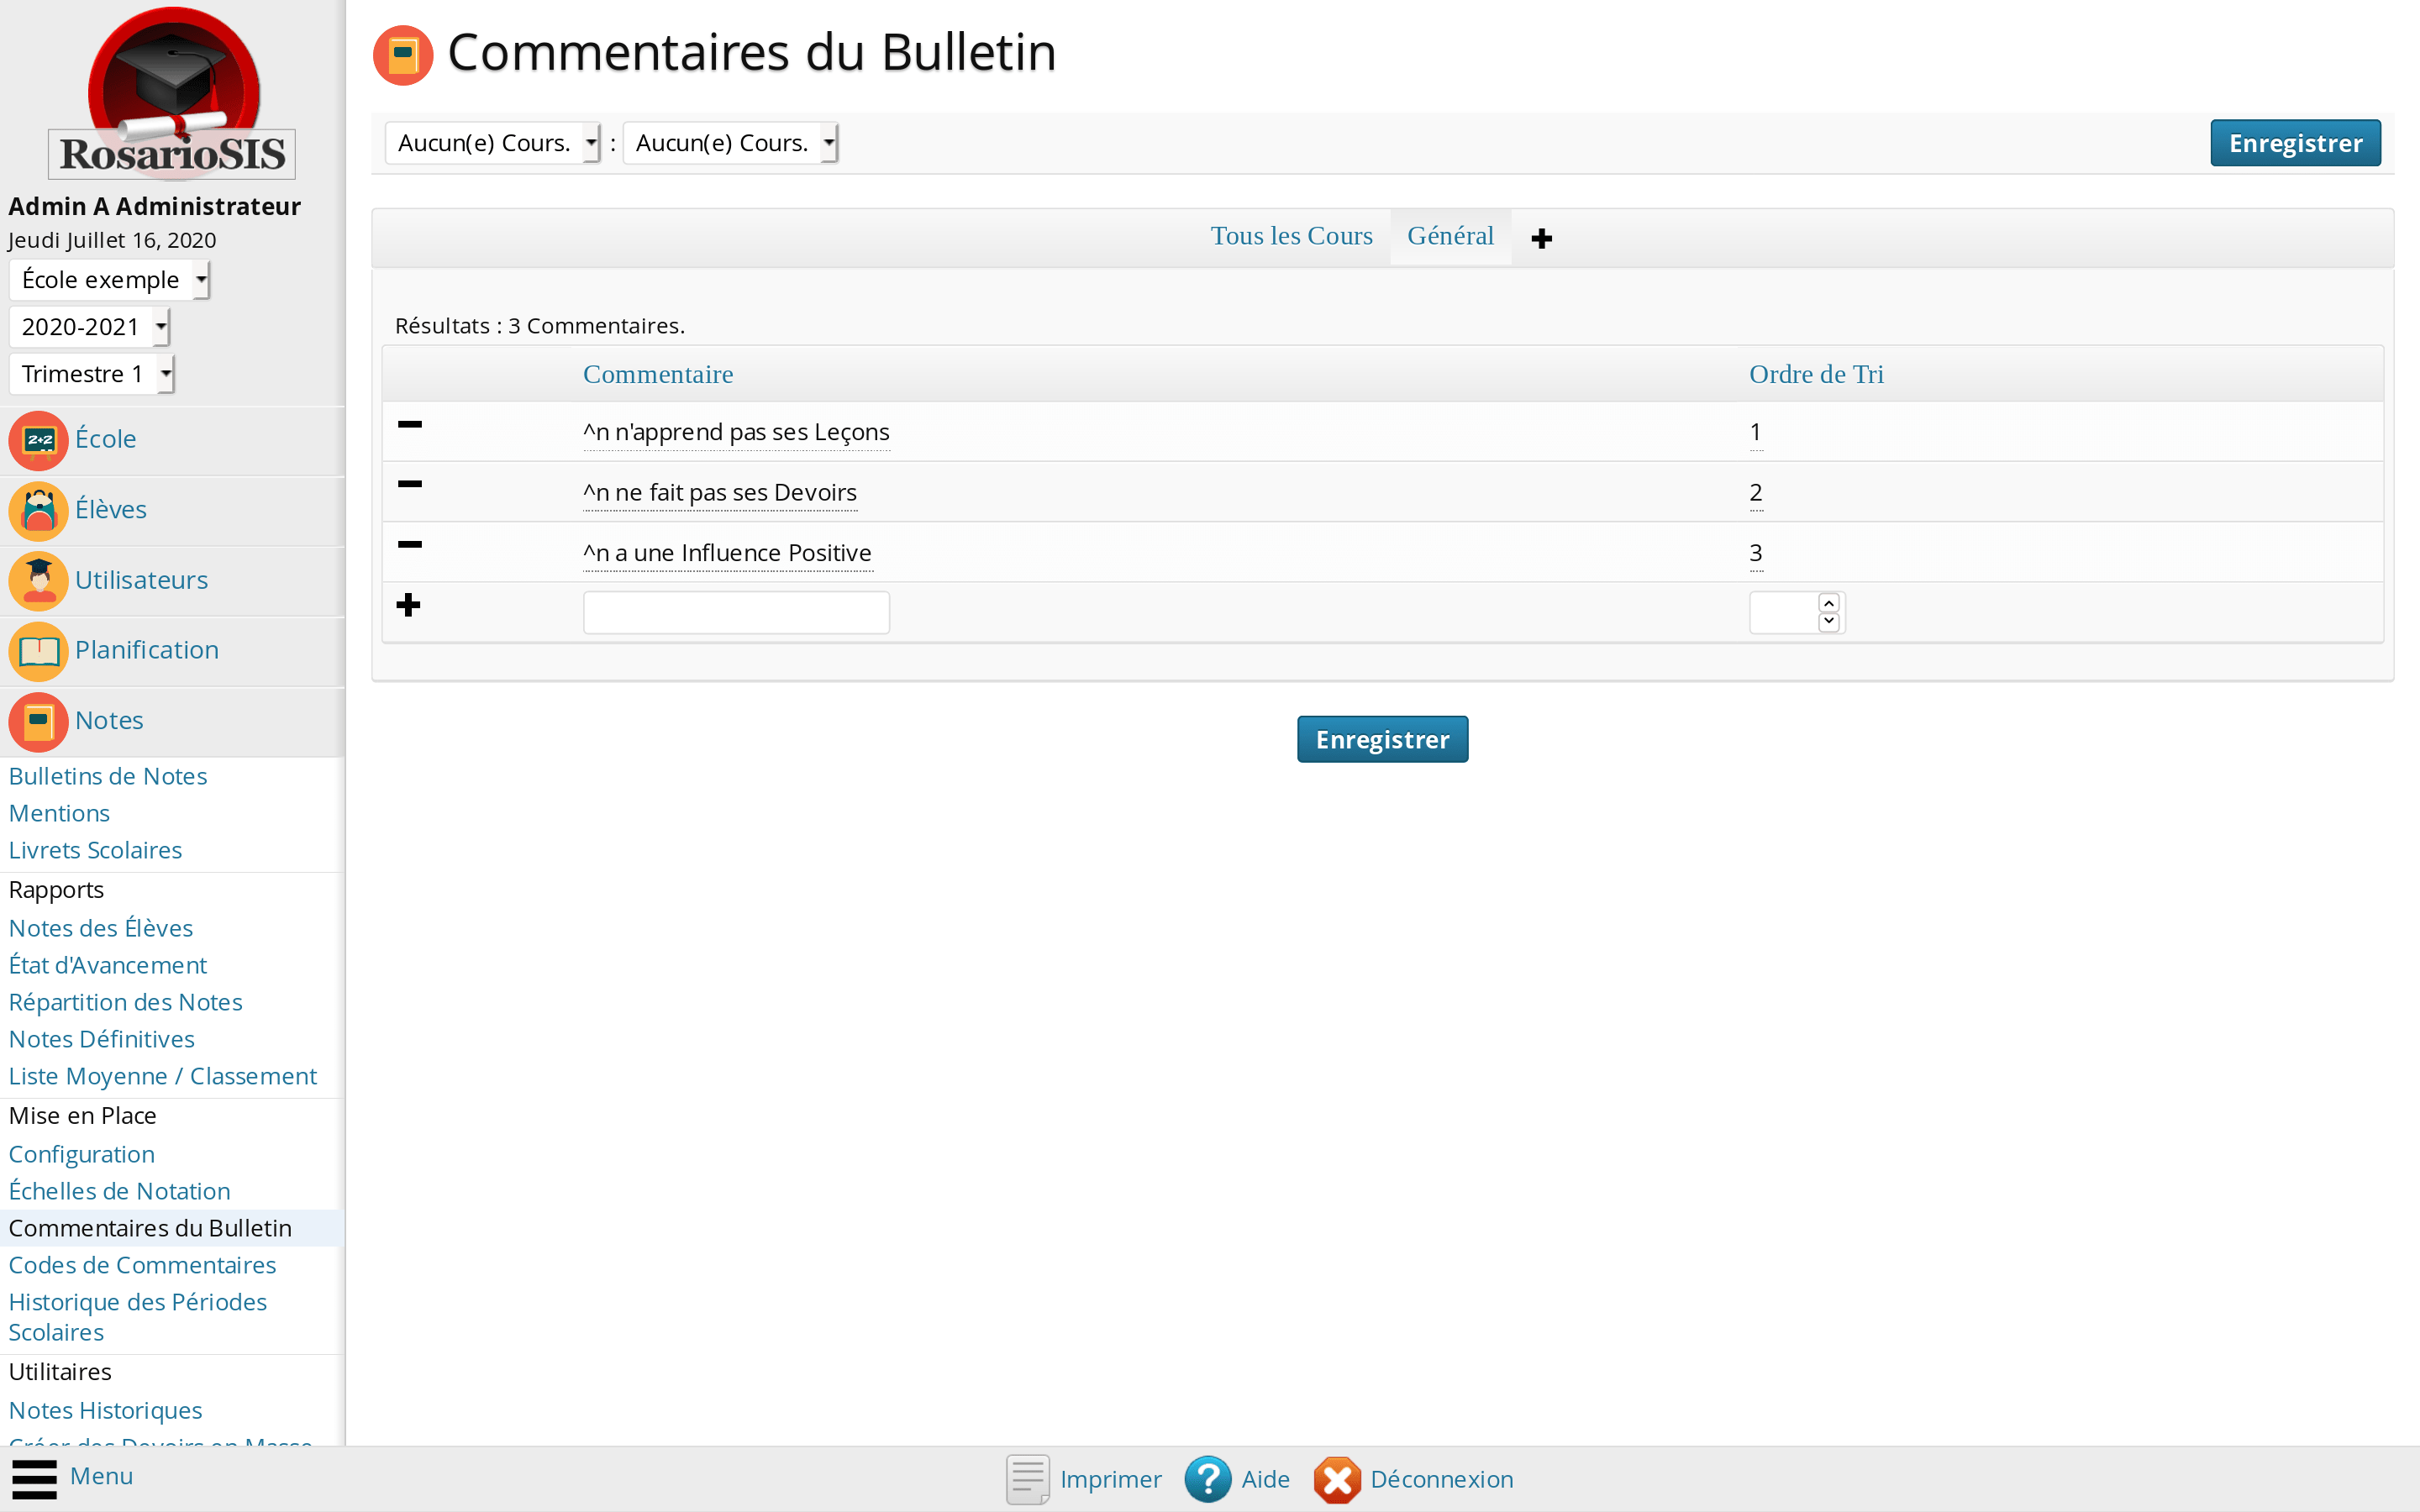 Configuration des Commentaires du Bulletin de Notes